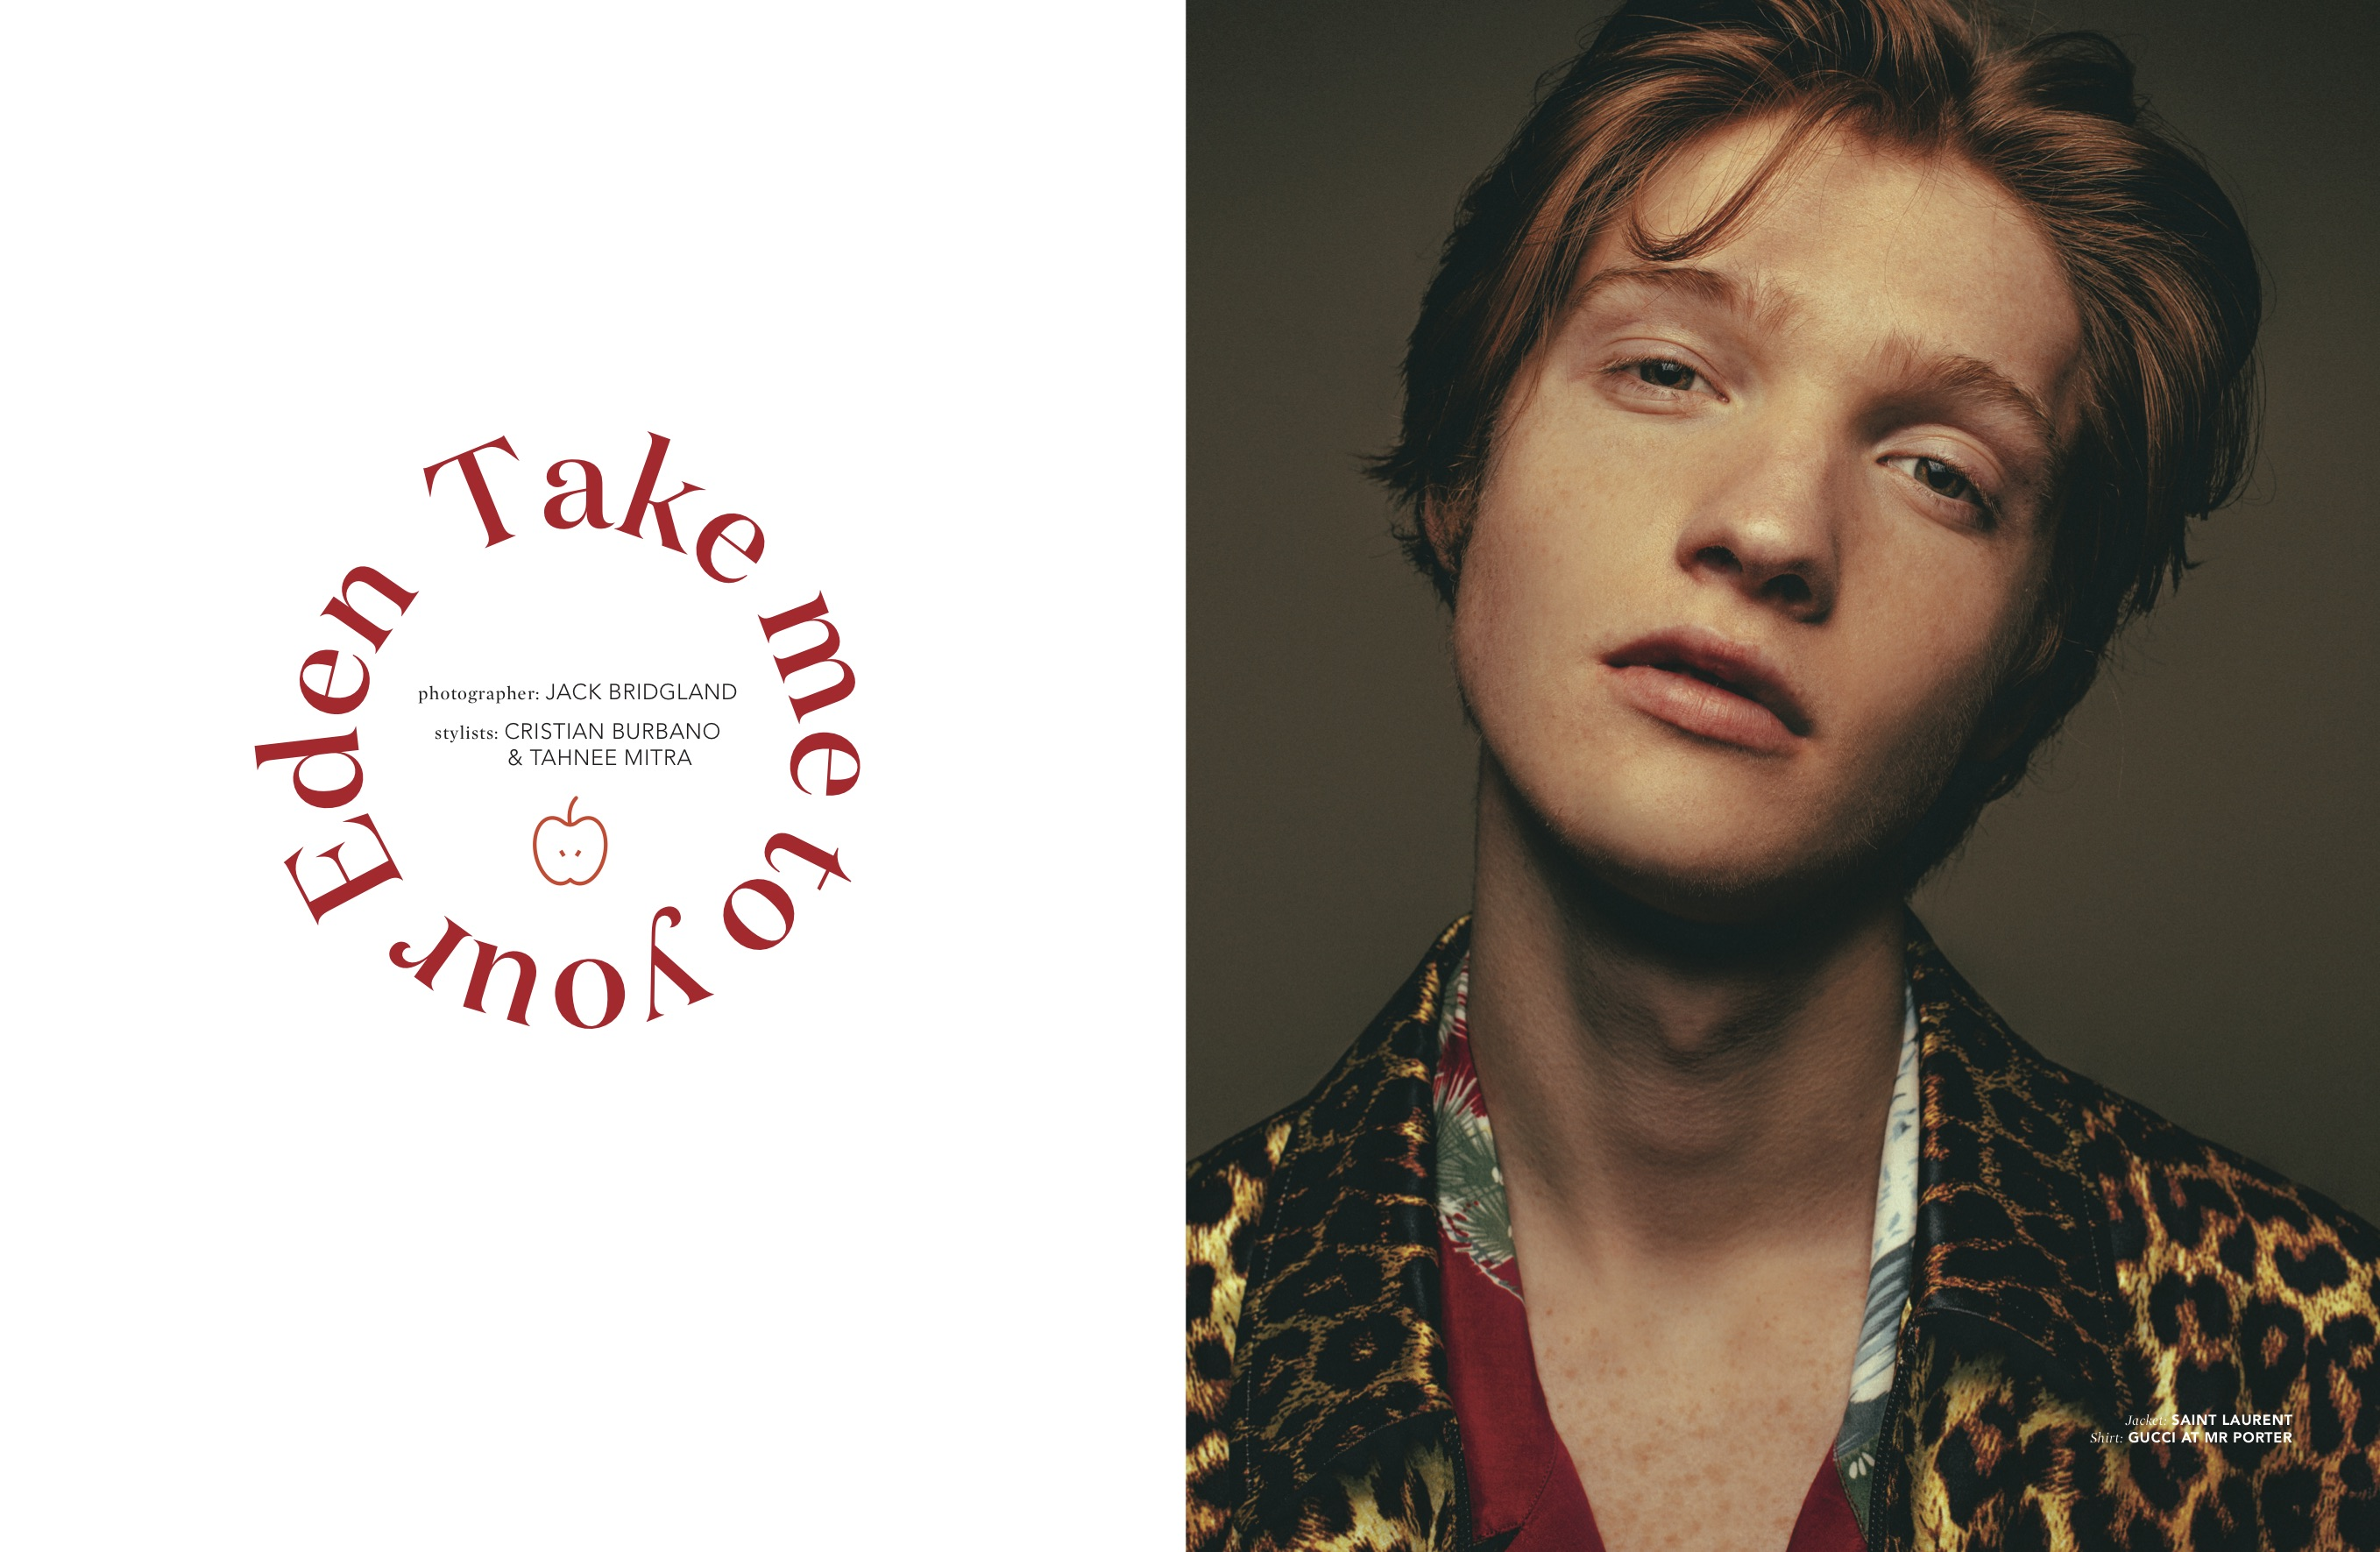 take me to your eden - streets mag 1